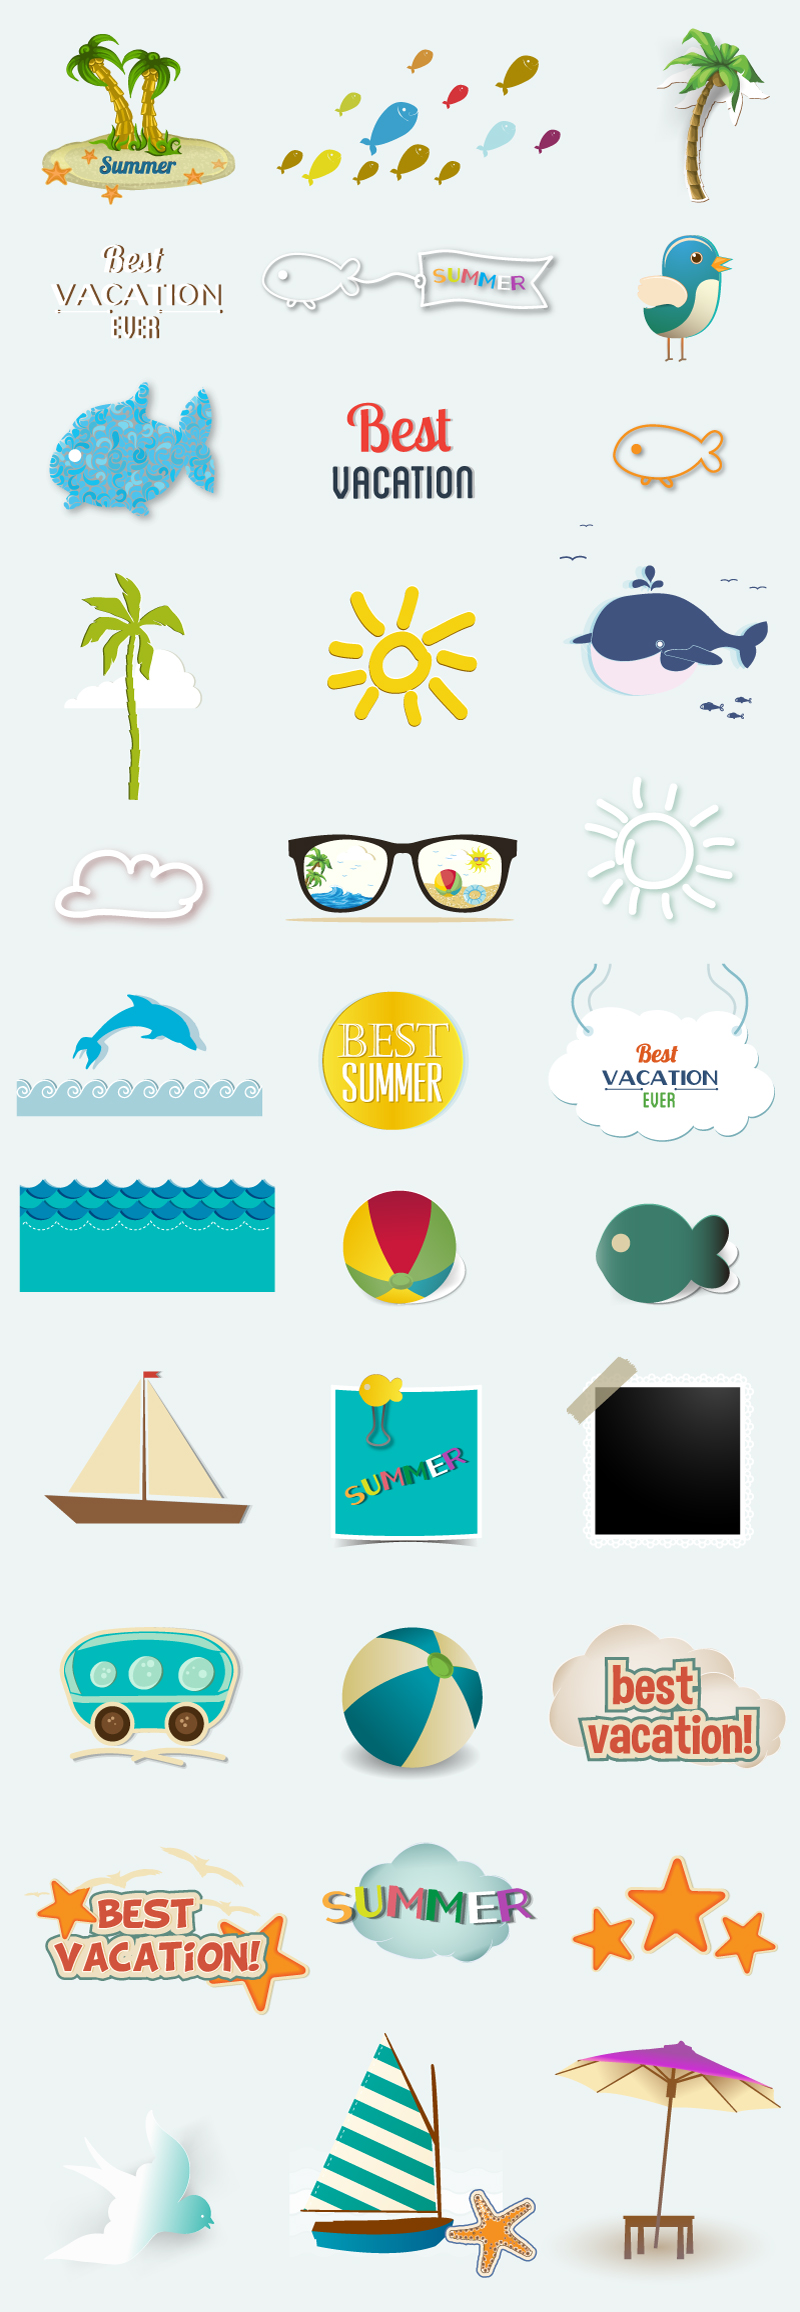 Summer Vacation Elements Vector